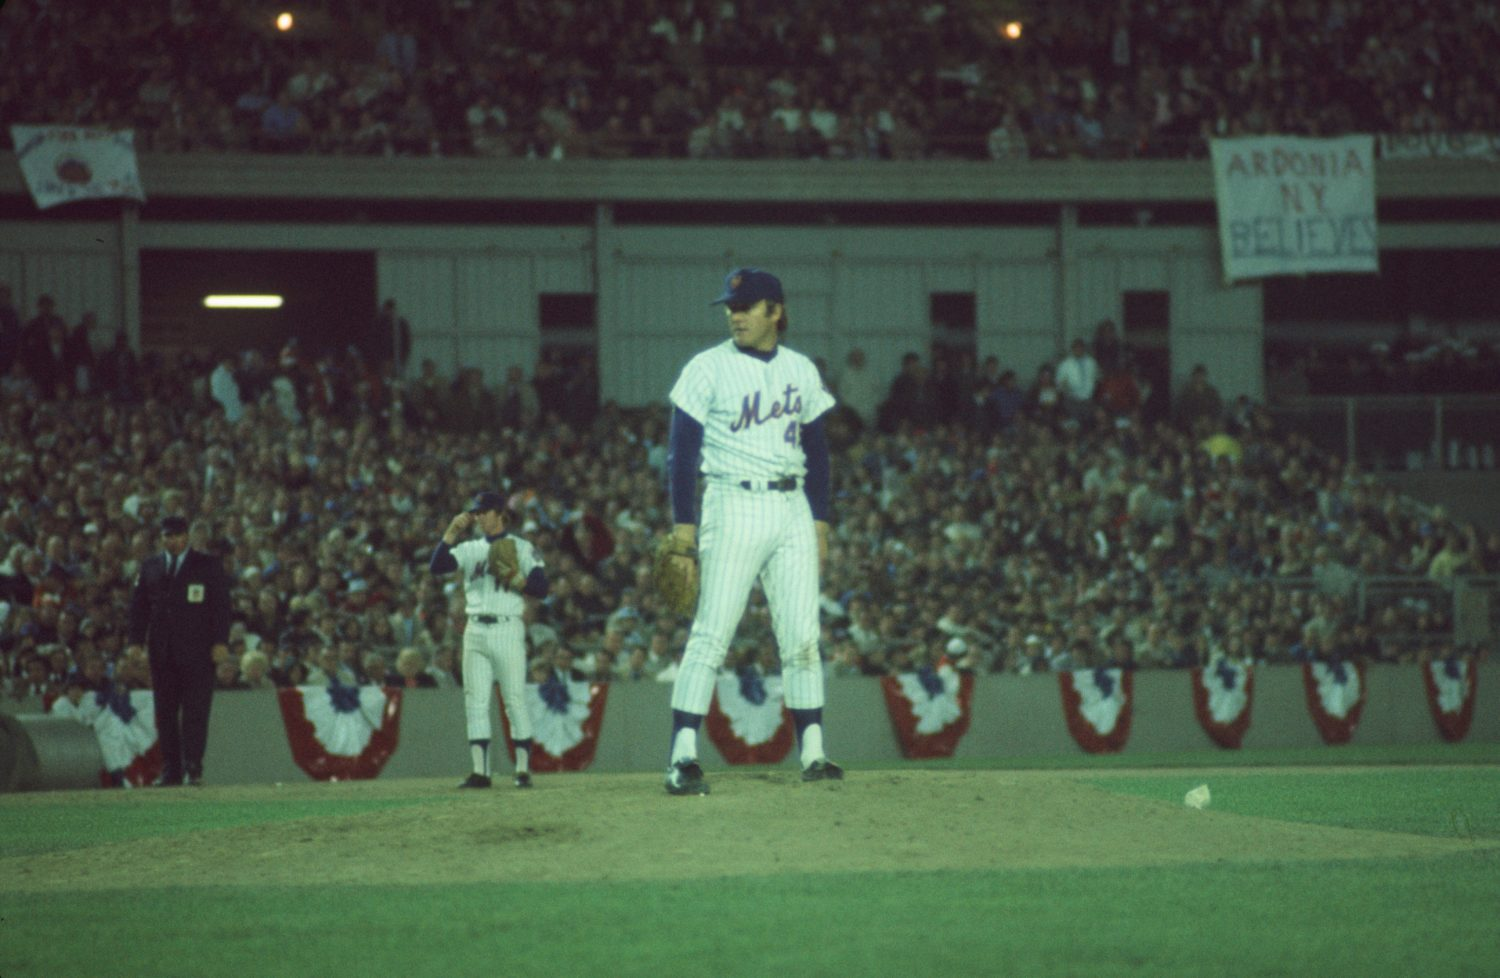 Wayne Garrett on the Mound as Sign in Background Reads